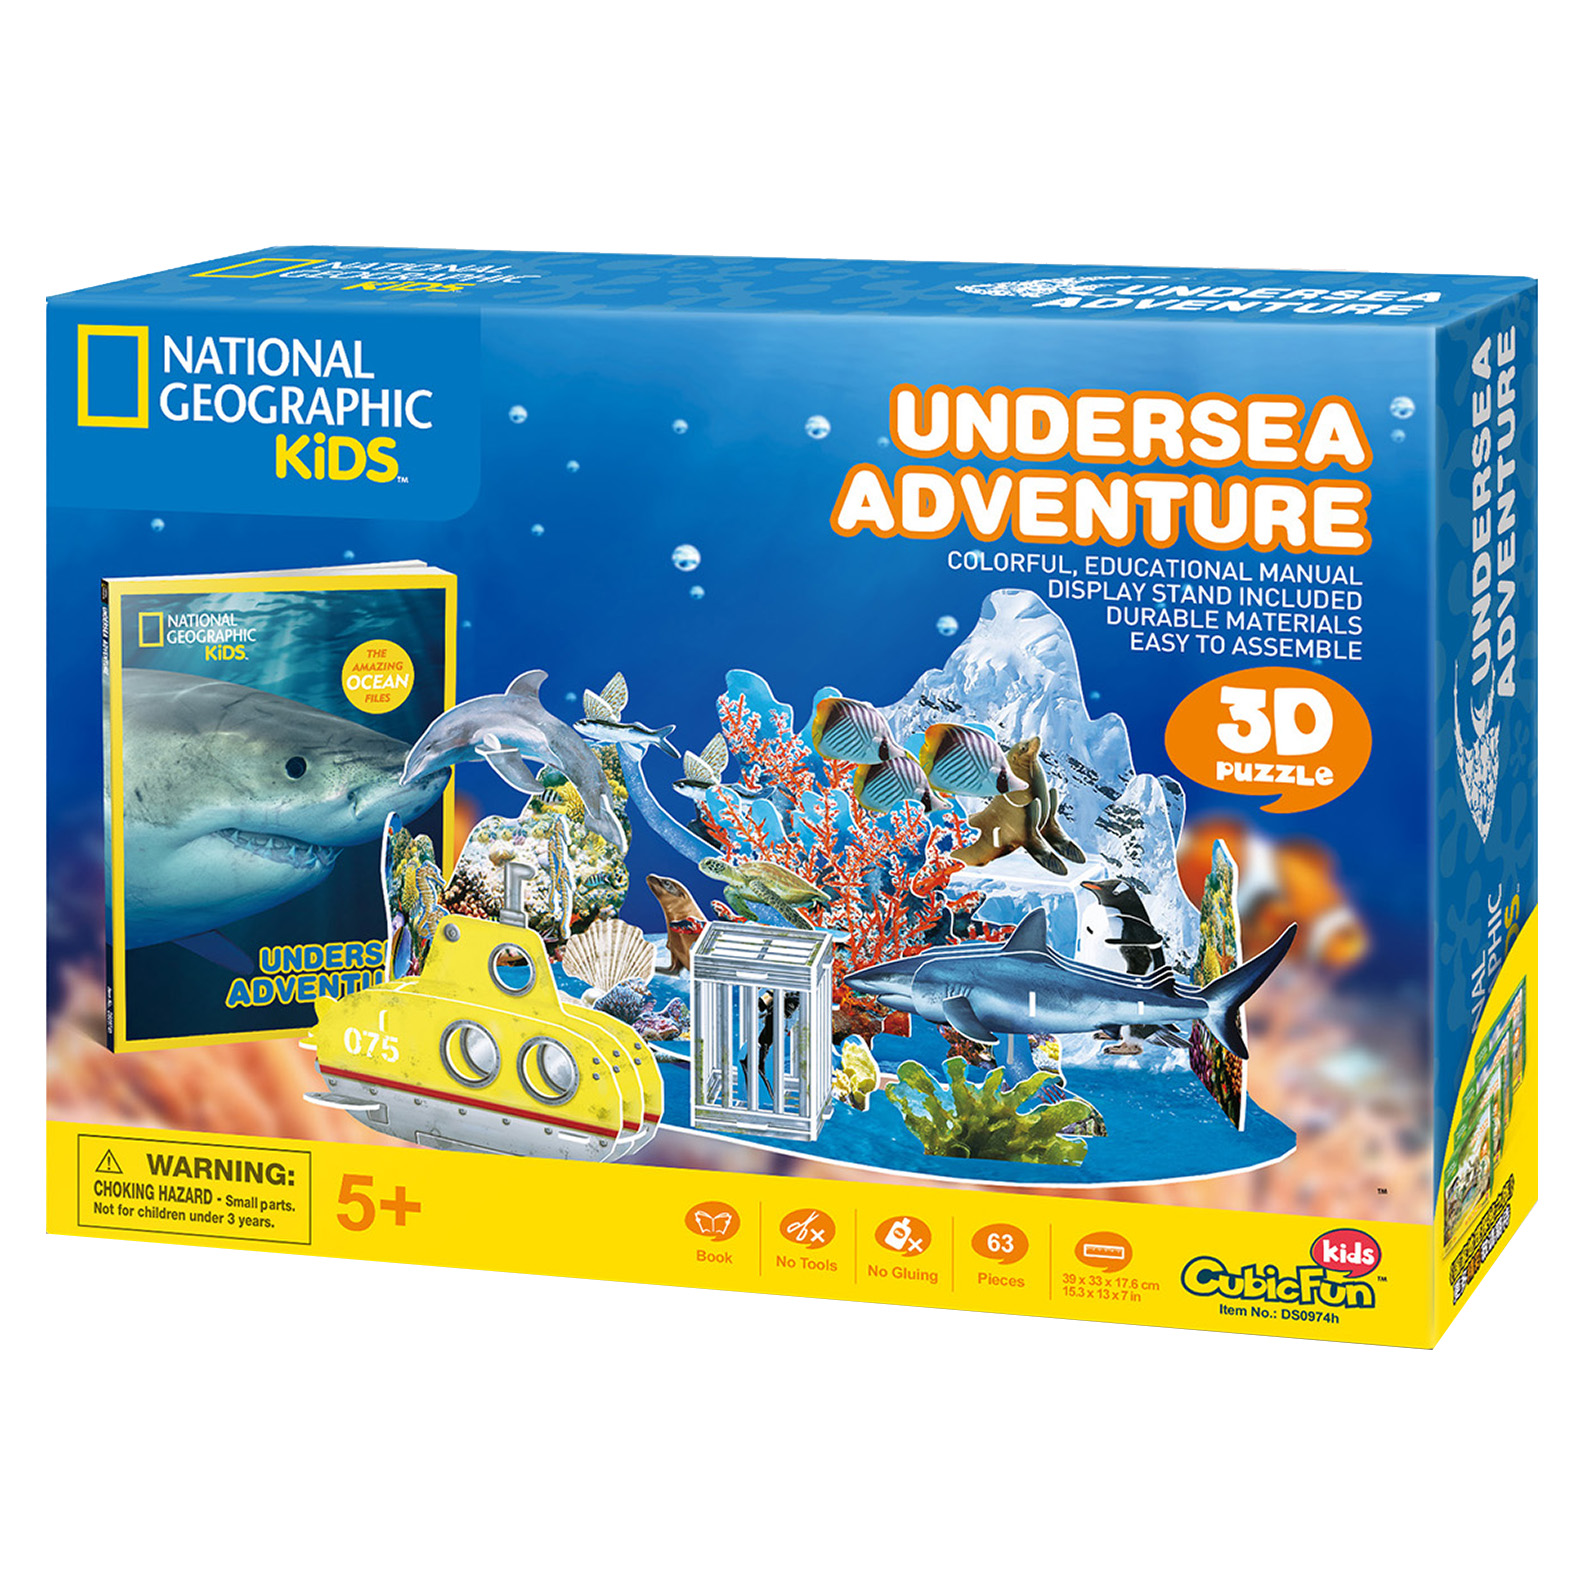 national geographic 3d dinosaur puzzle instructions